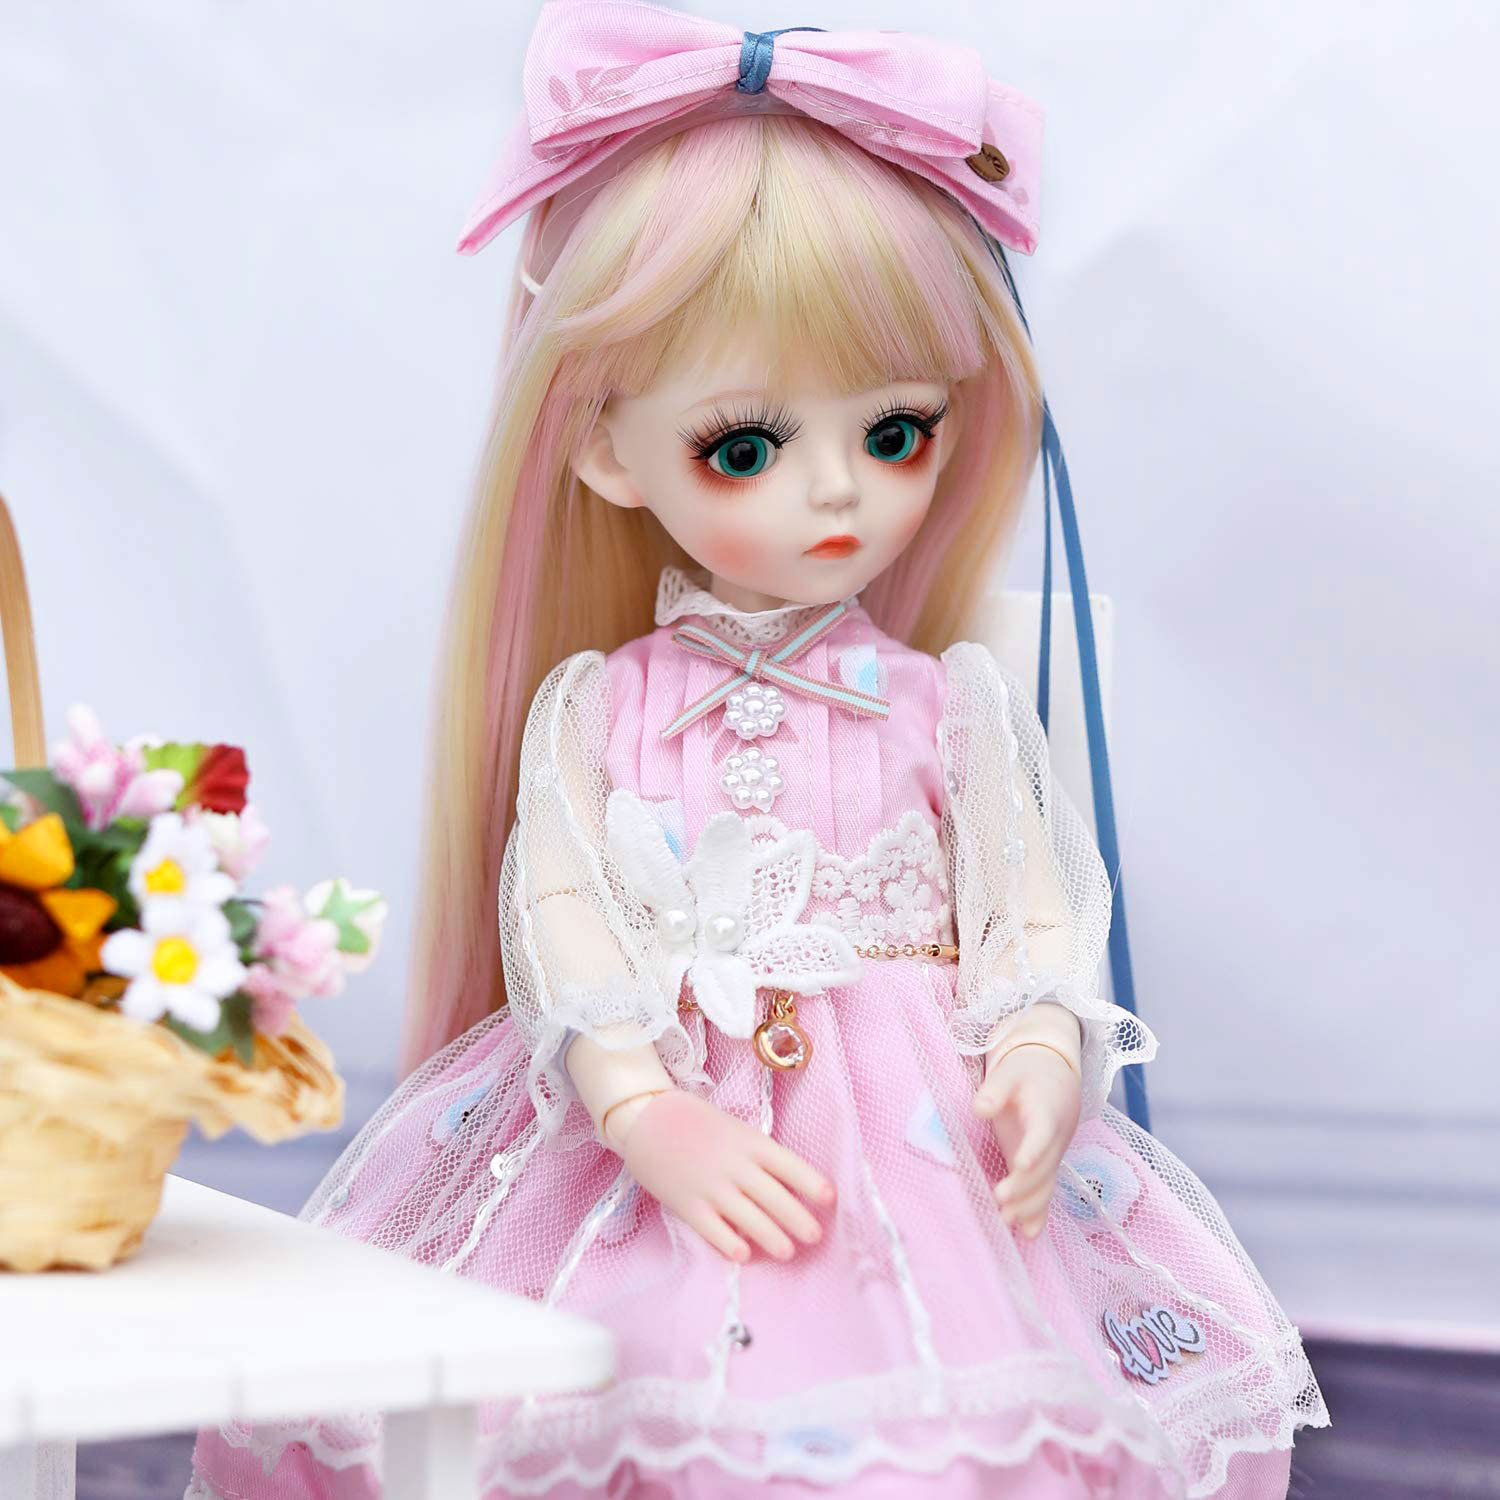 2021 Nice Doll Dp Images